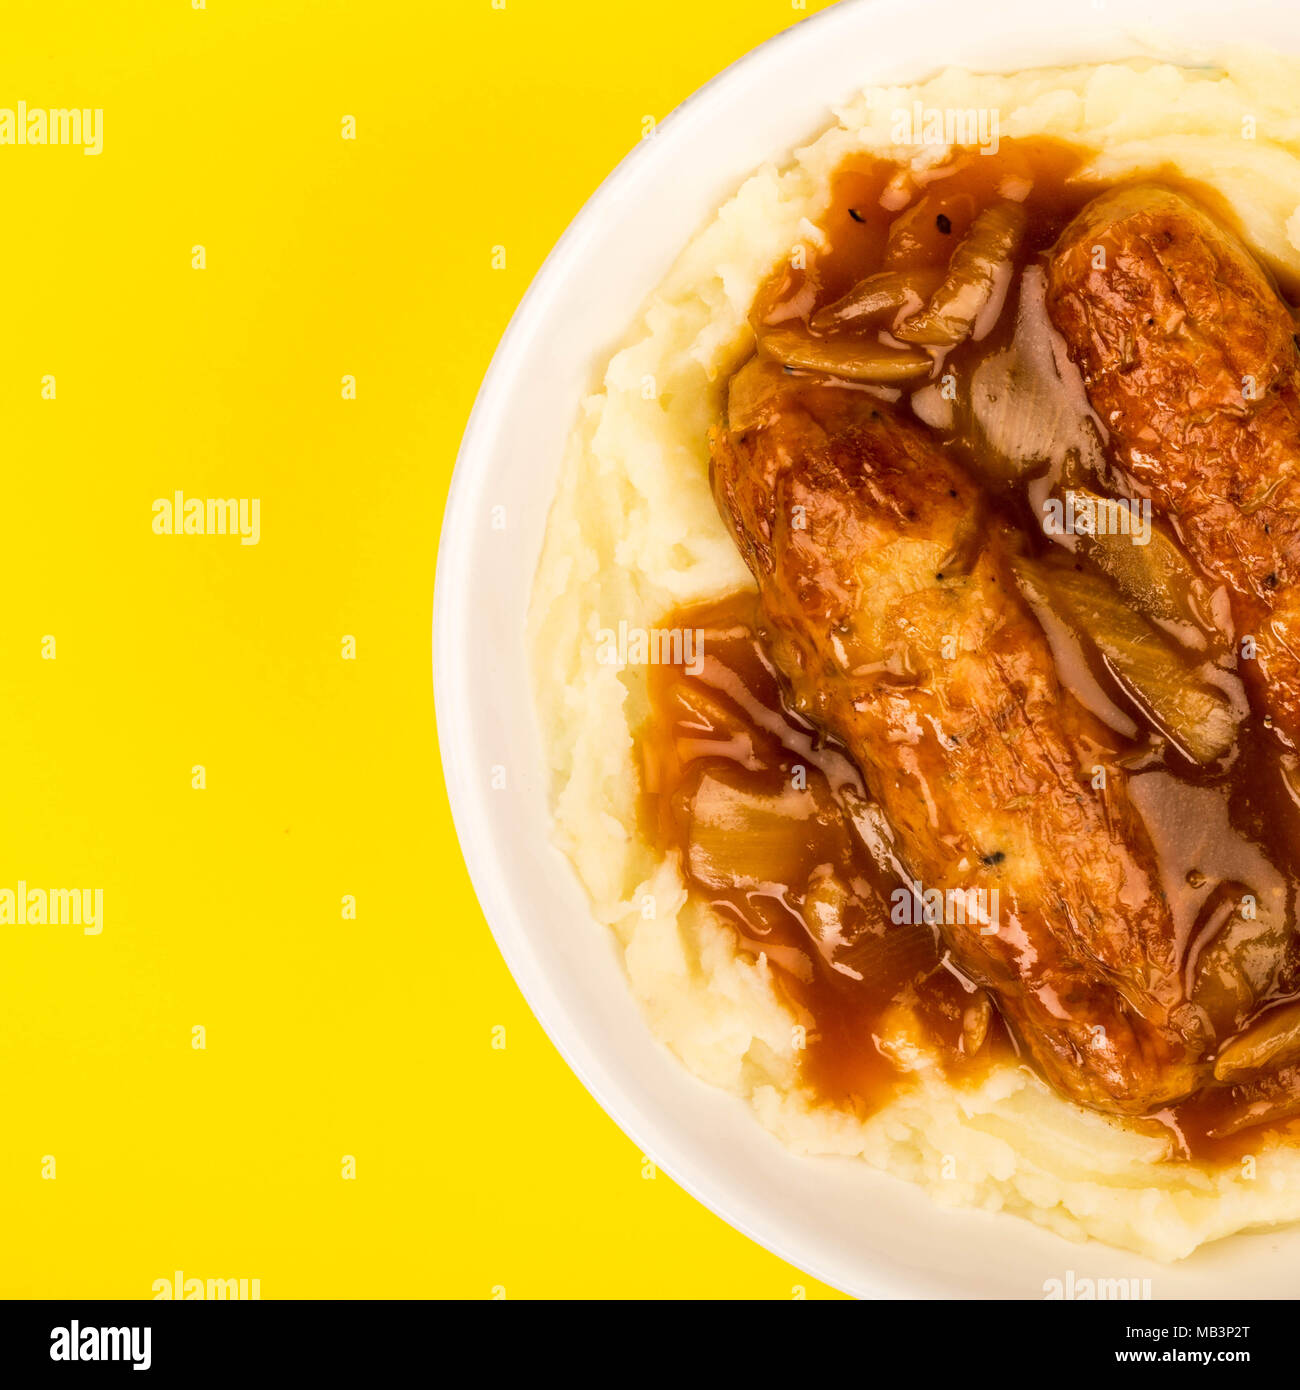 Sausage And Mashed Potatoes With Onion Gravy Against A Yellow Background - Stock Image